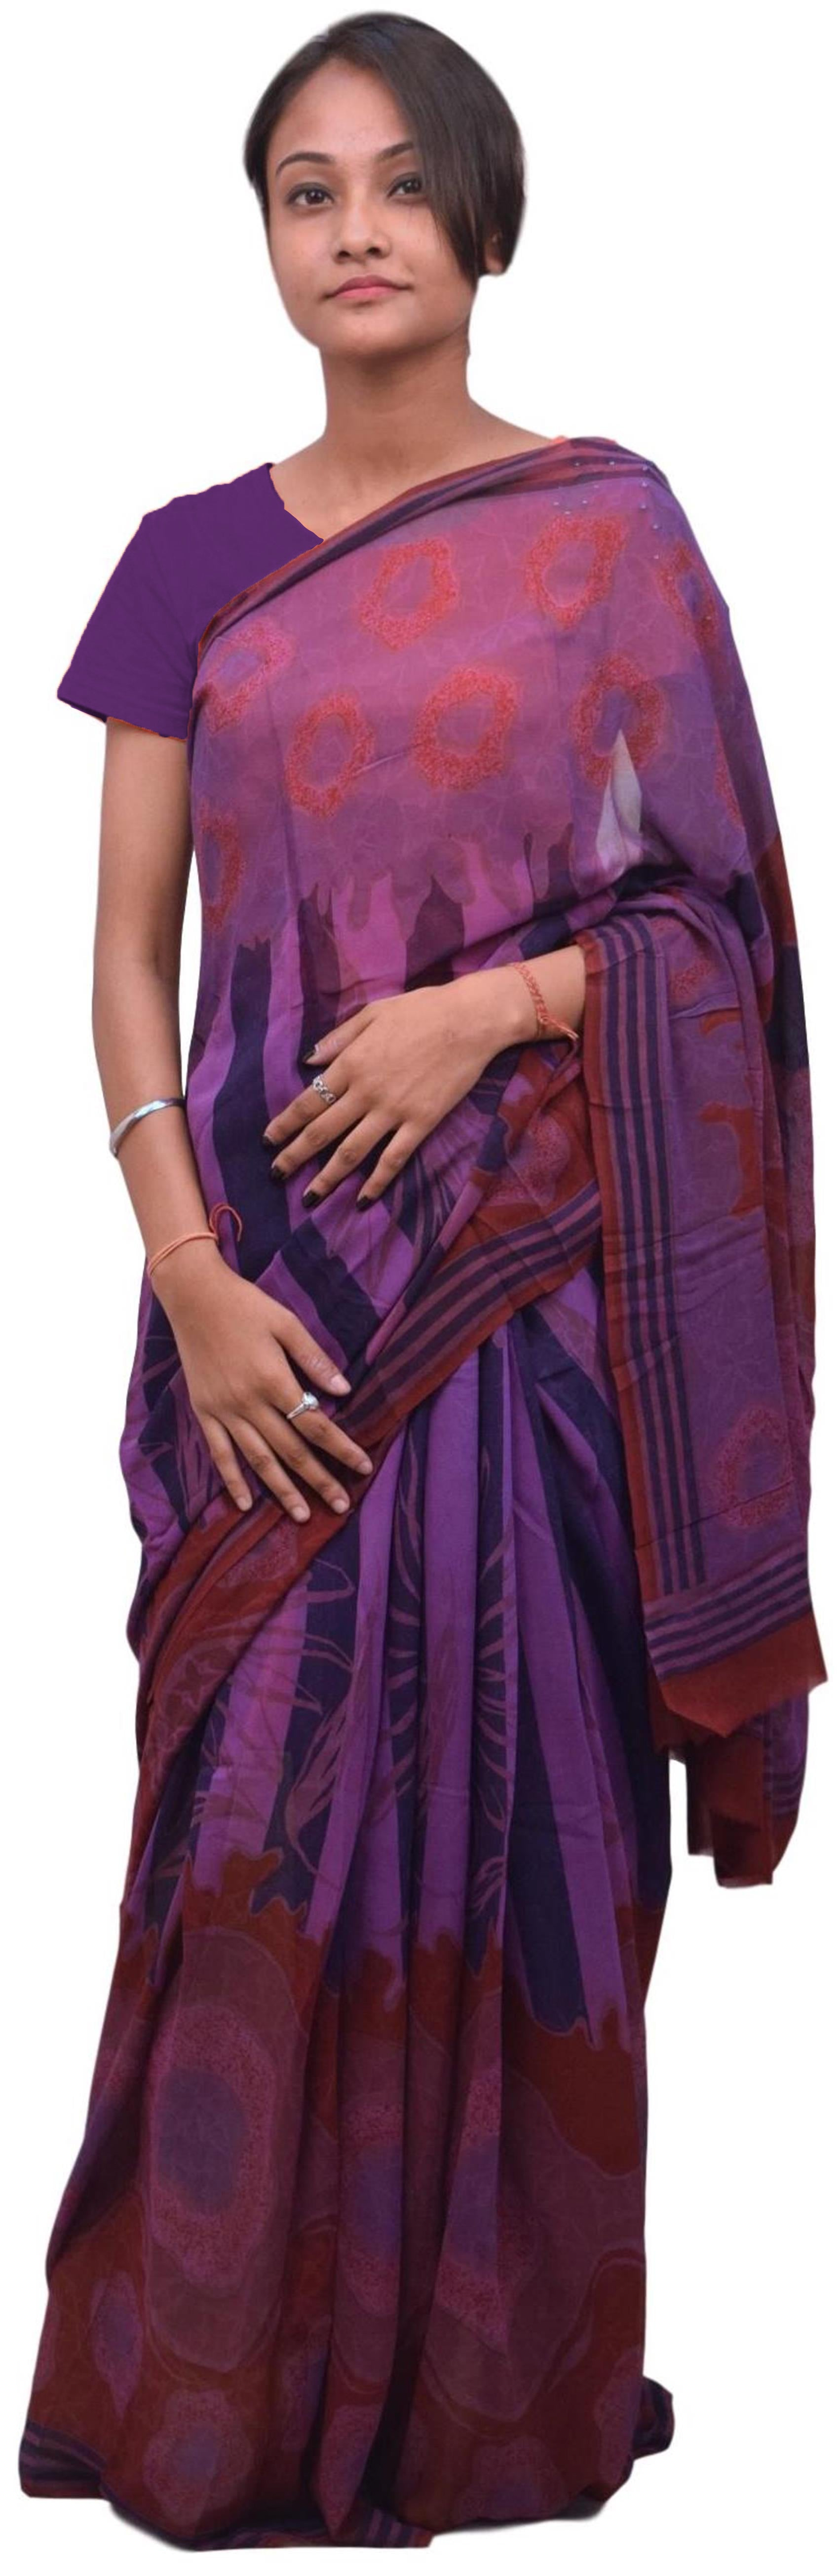 Multicolor Designer Wedding Partywear Pure Crepe Hand Brush Reprinted Kolkata Saree Sari RP92